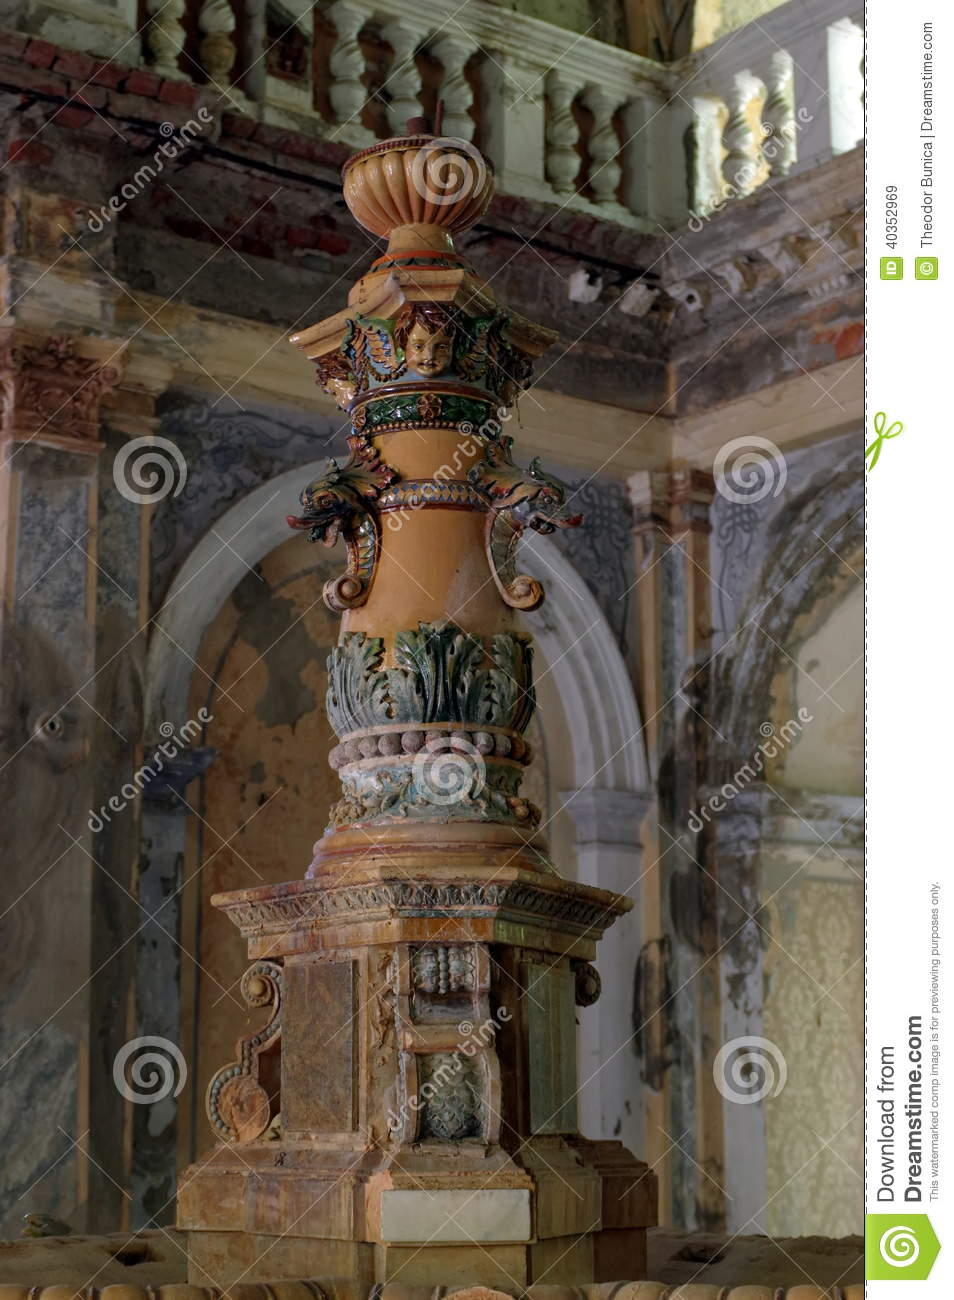 D tail d 39 une fontaine du 19 me si cle baile photo stock for Interieur 19eme siecle